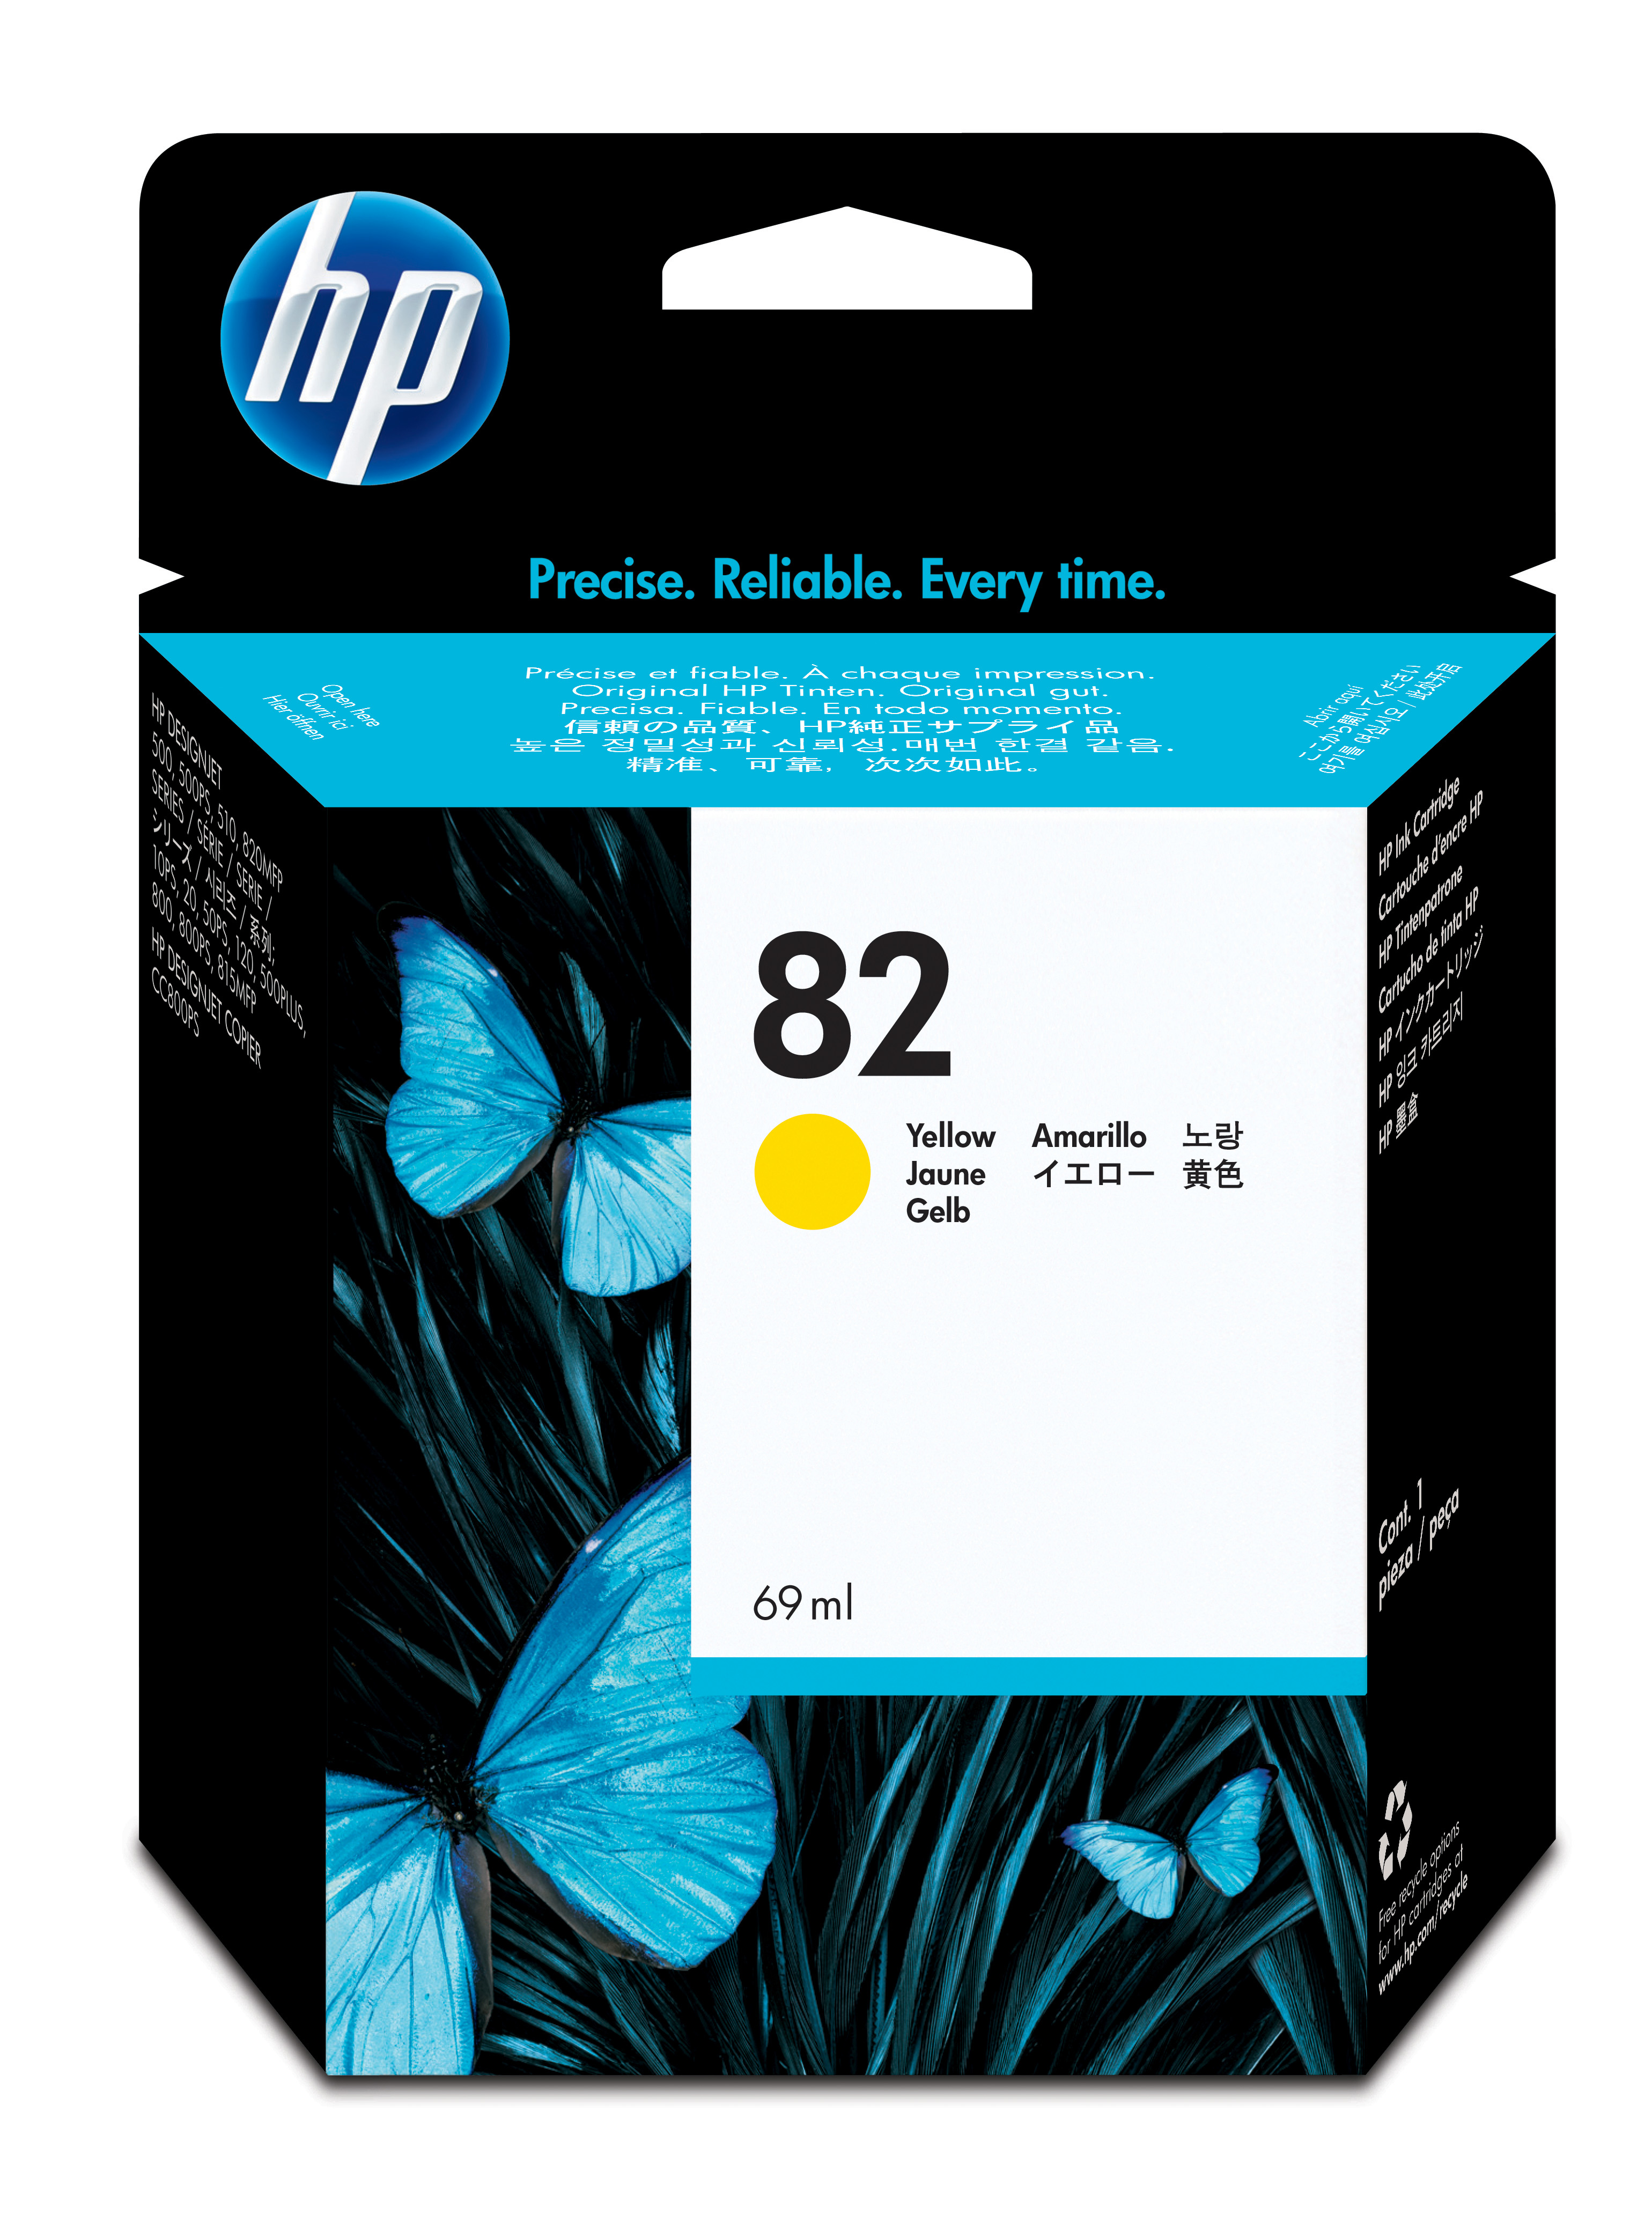 BlueBox Compatible HP C4913A (82) Yellow Ink Cartridge 69ml C4913A - rem01